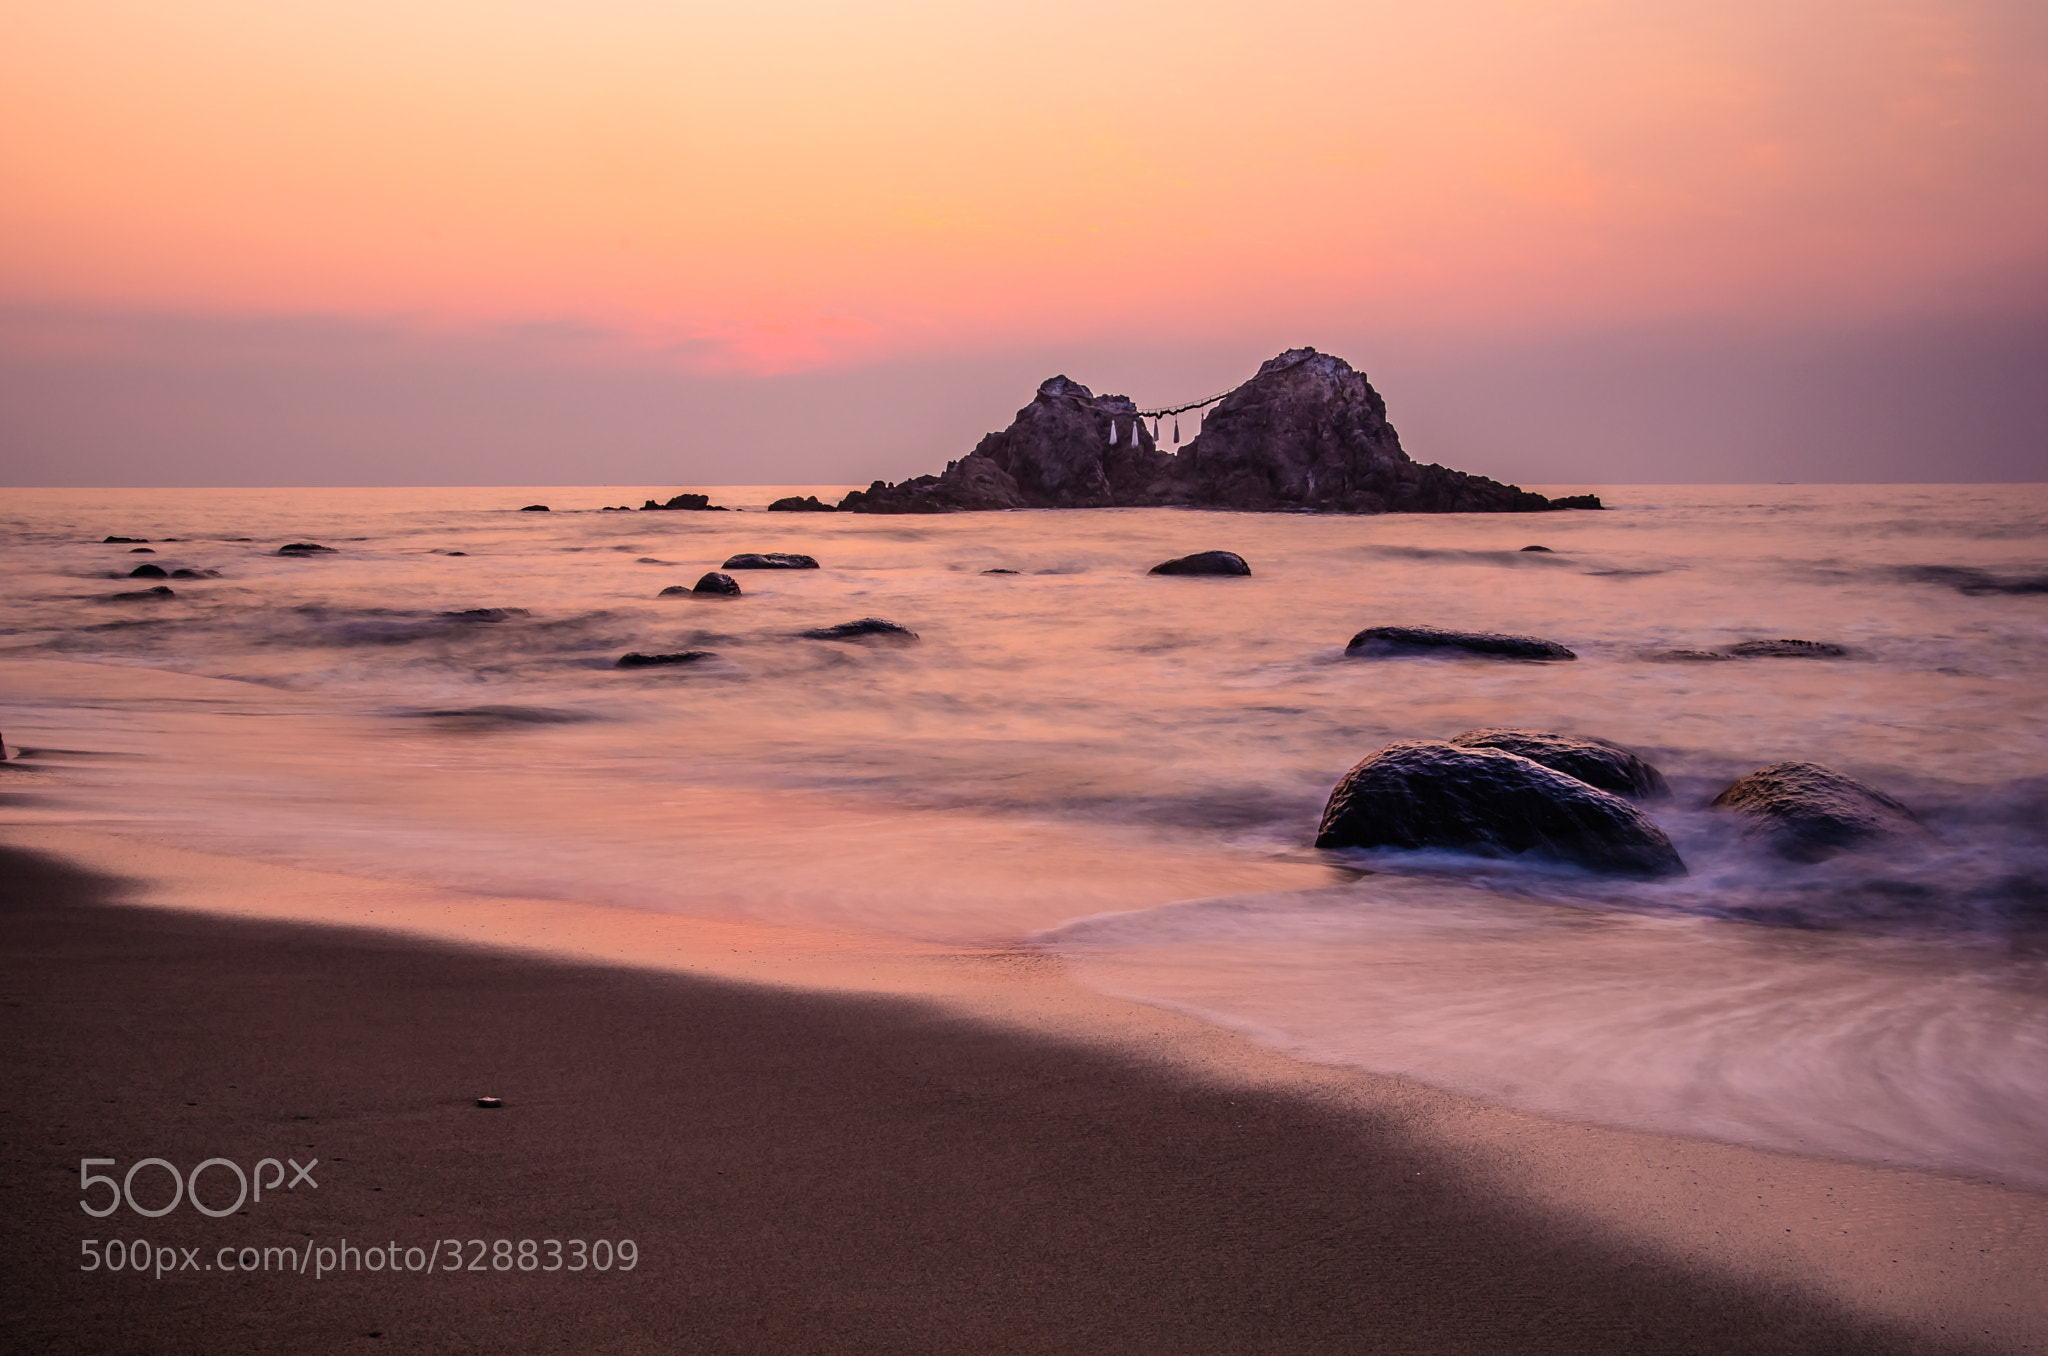 Photograph The sun went down by Sachiko Kawakami on 500px